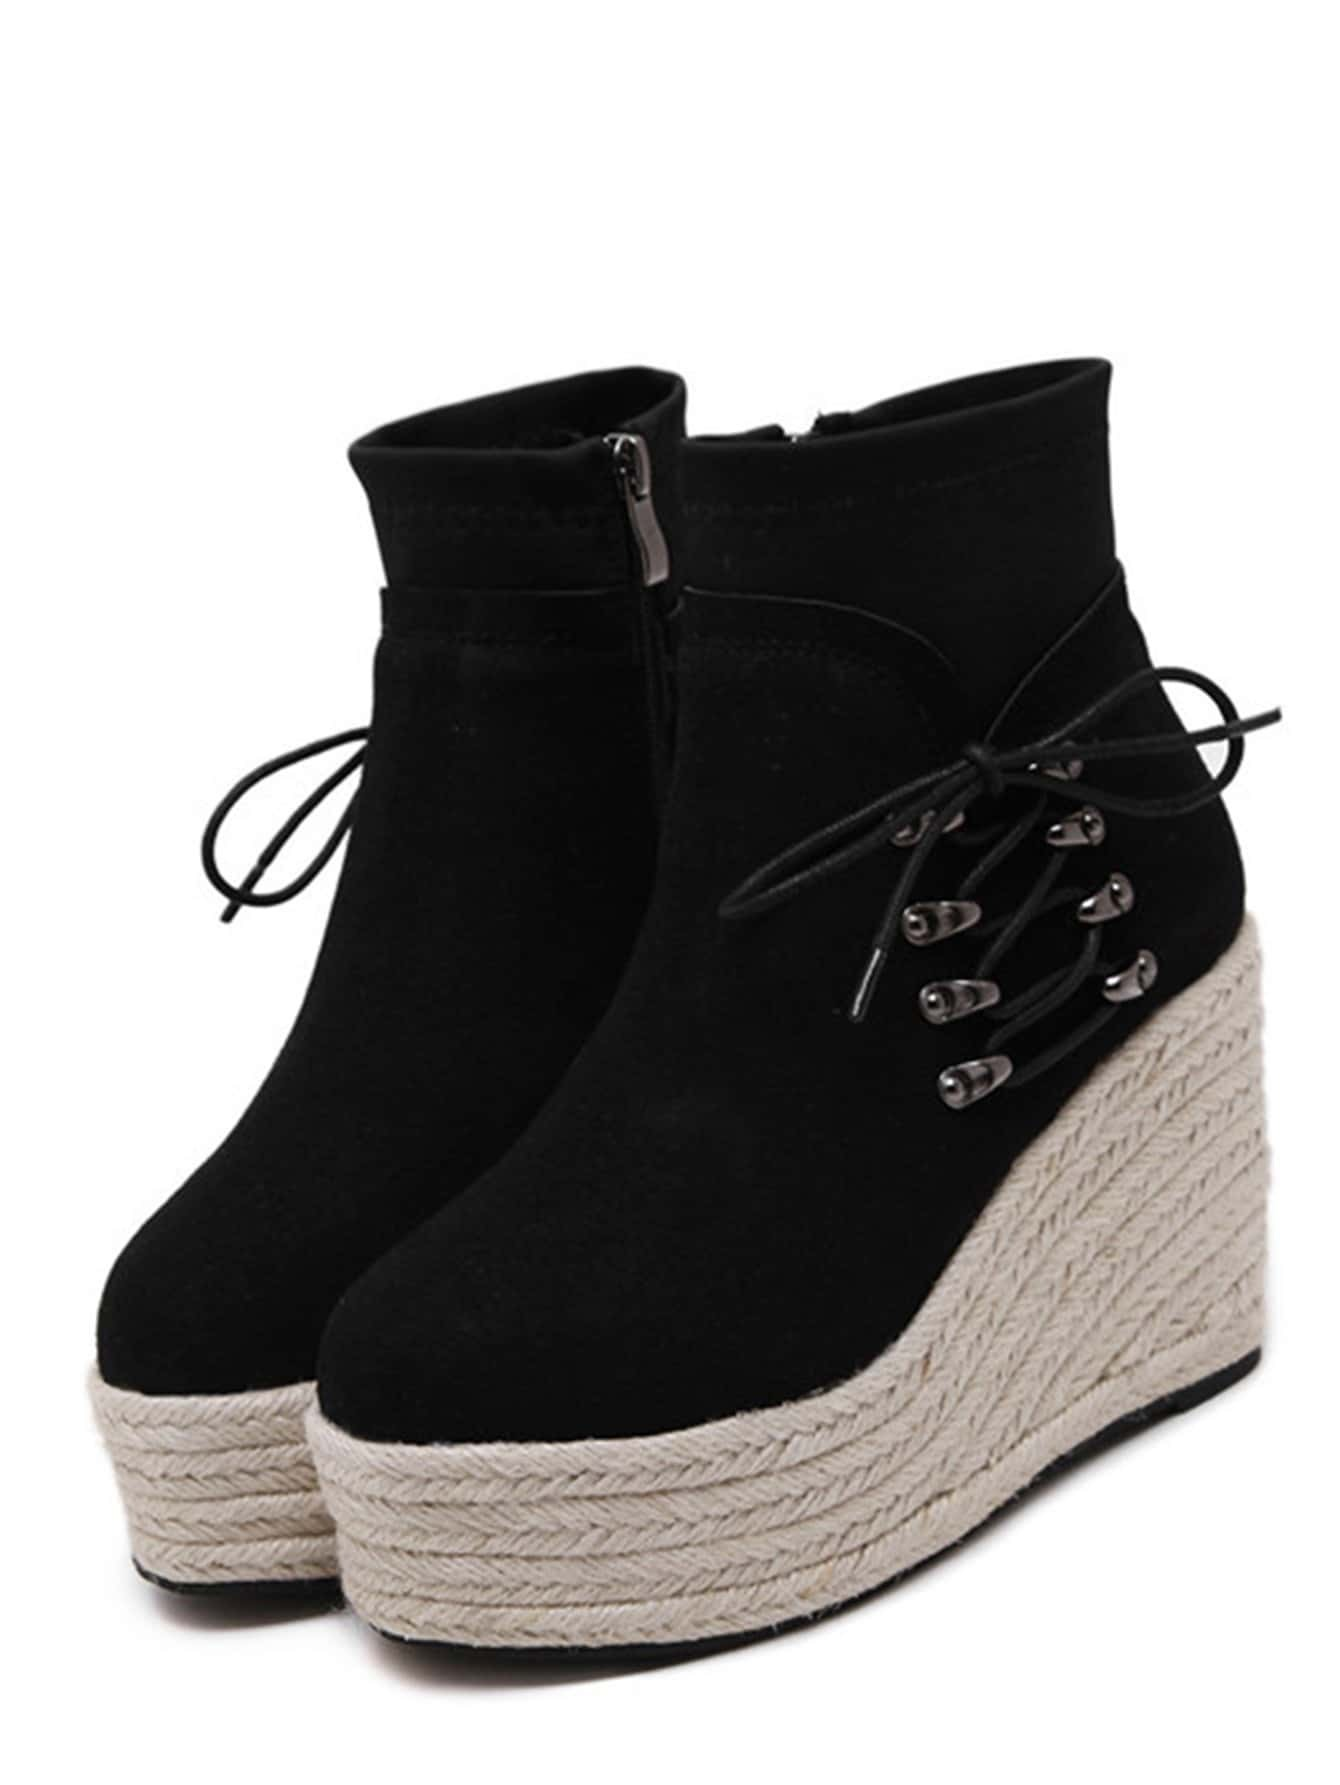 fb654d08509f Black Faux Suede Lace Up Espadrille Wedge Heel Boots -SheIn(Sheinside)  Platform .